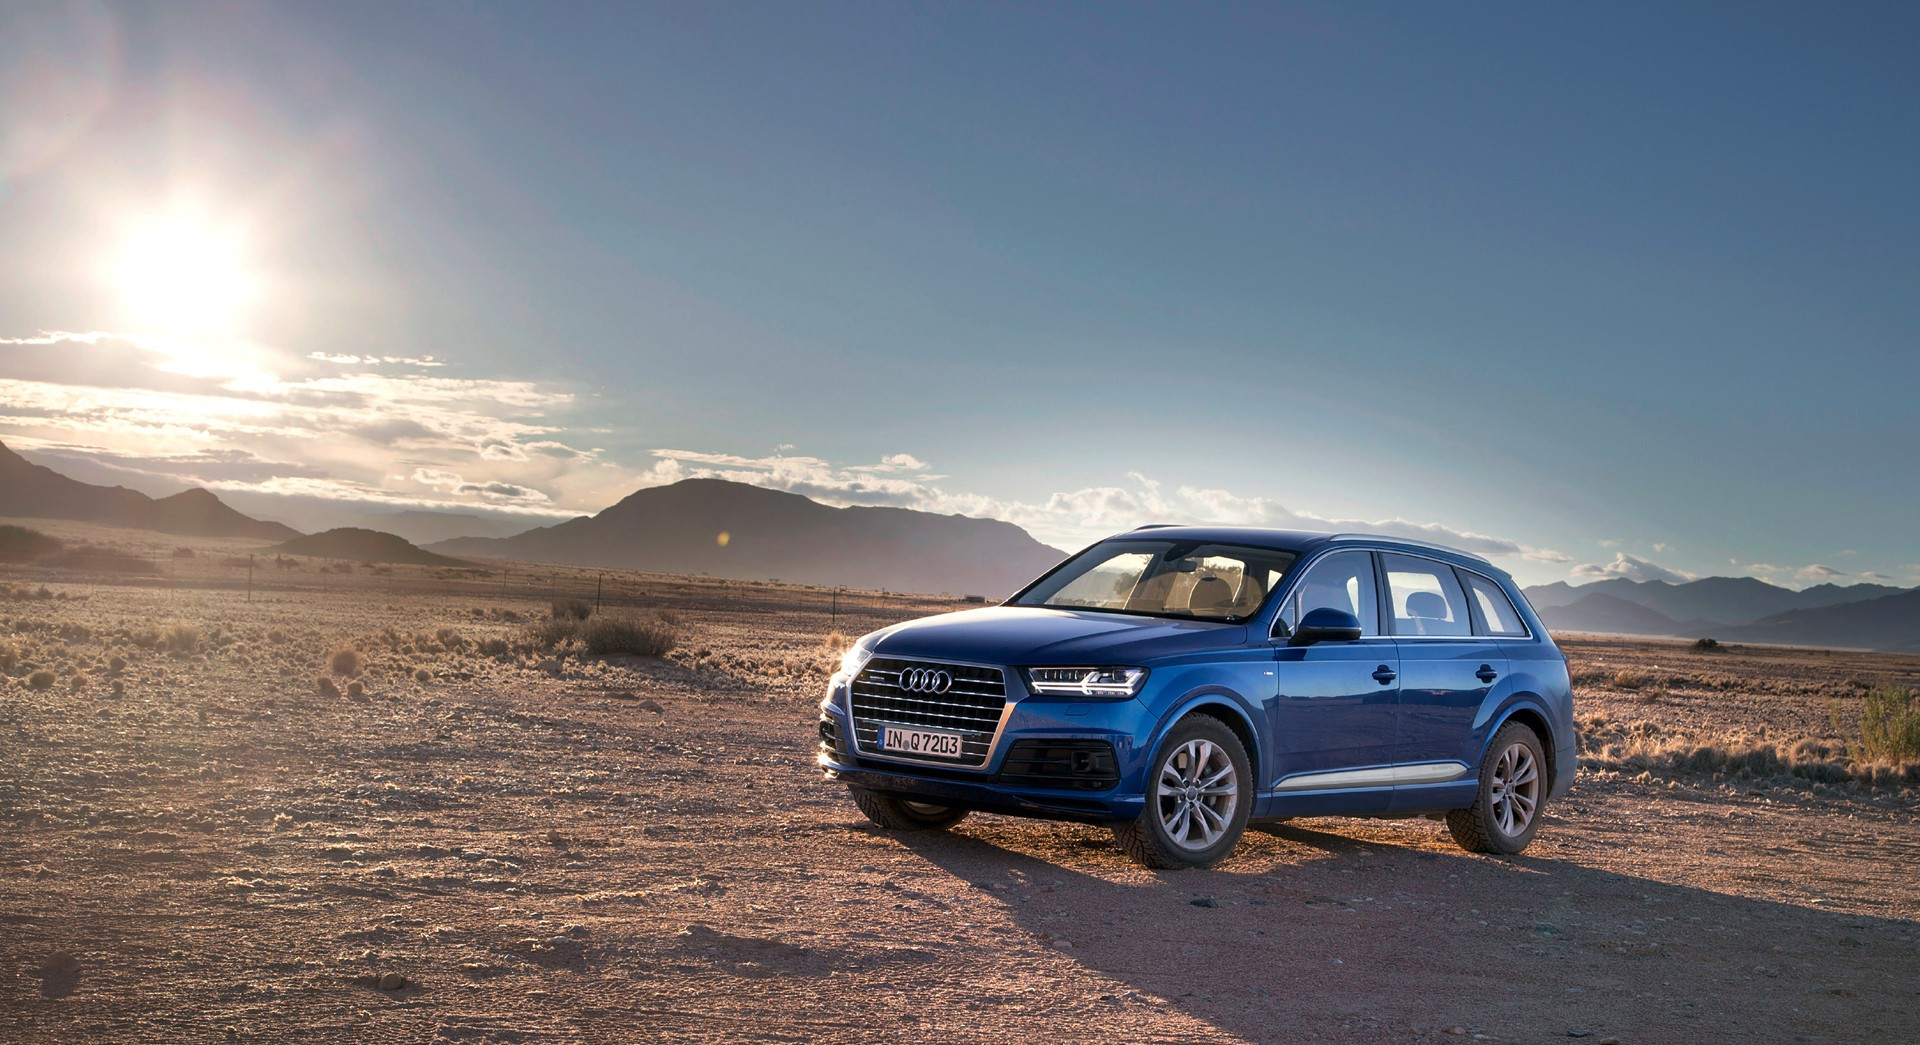 Audi Q7 Wallpapers Archives Page 2 Of 3 Hd Desktop